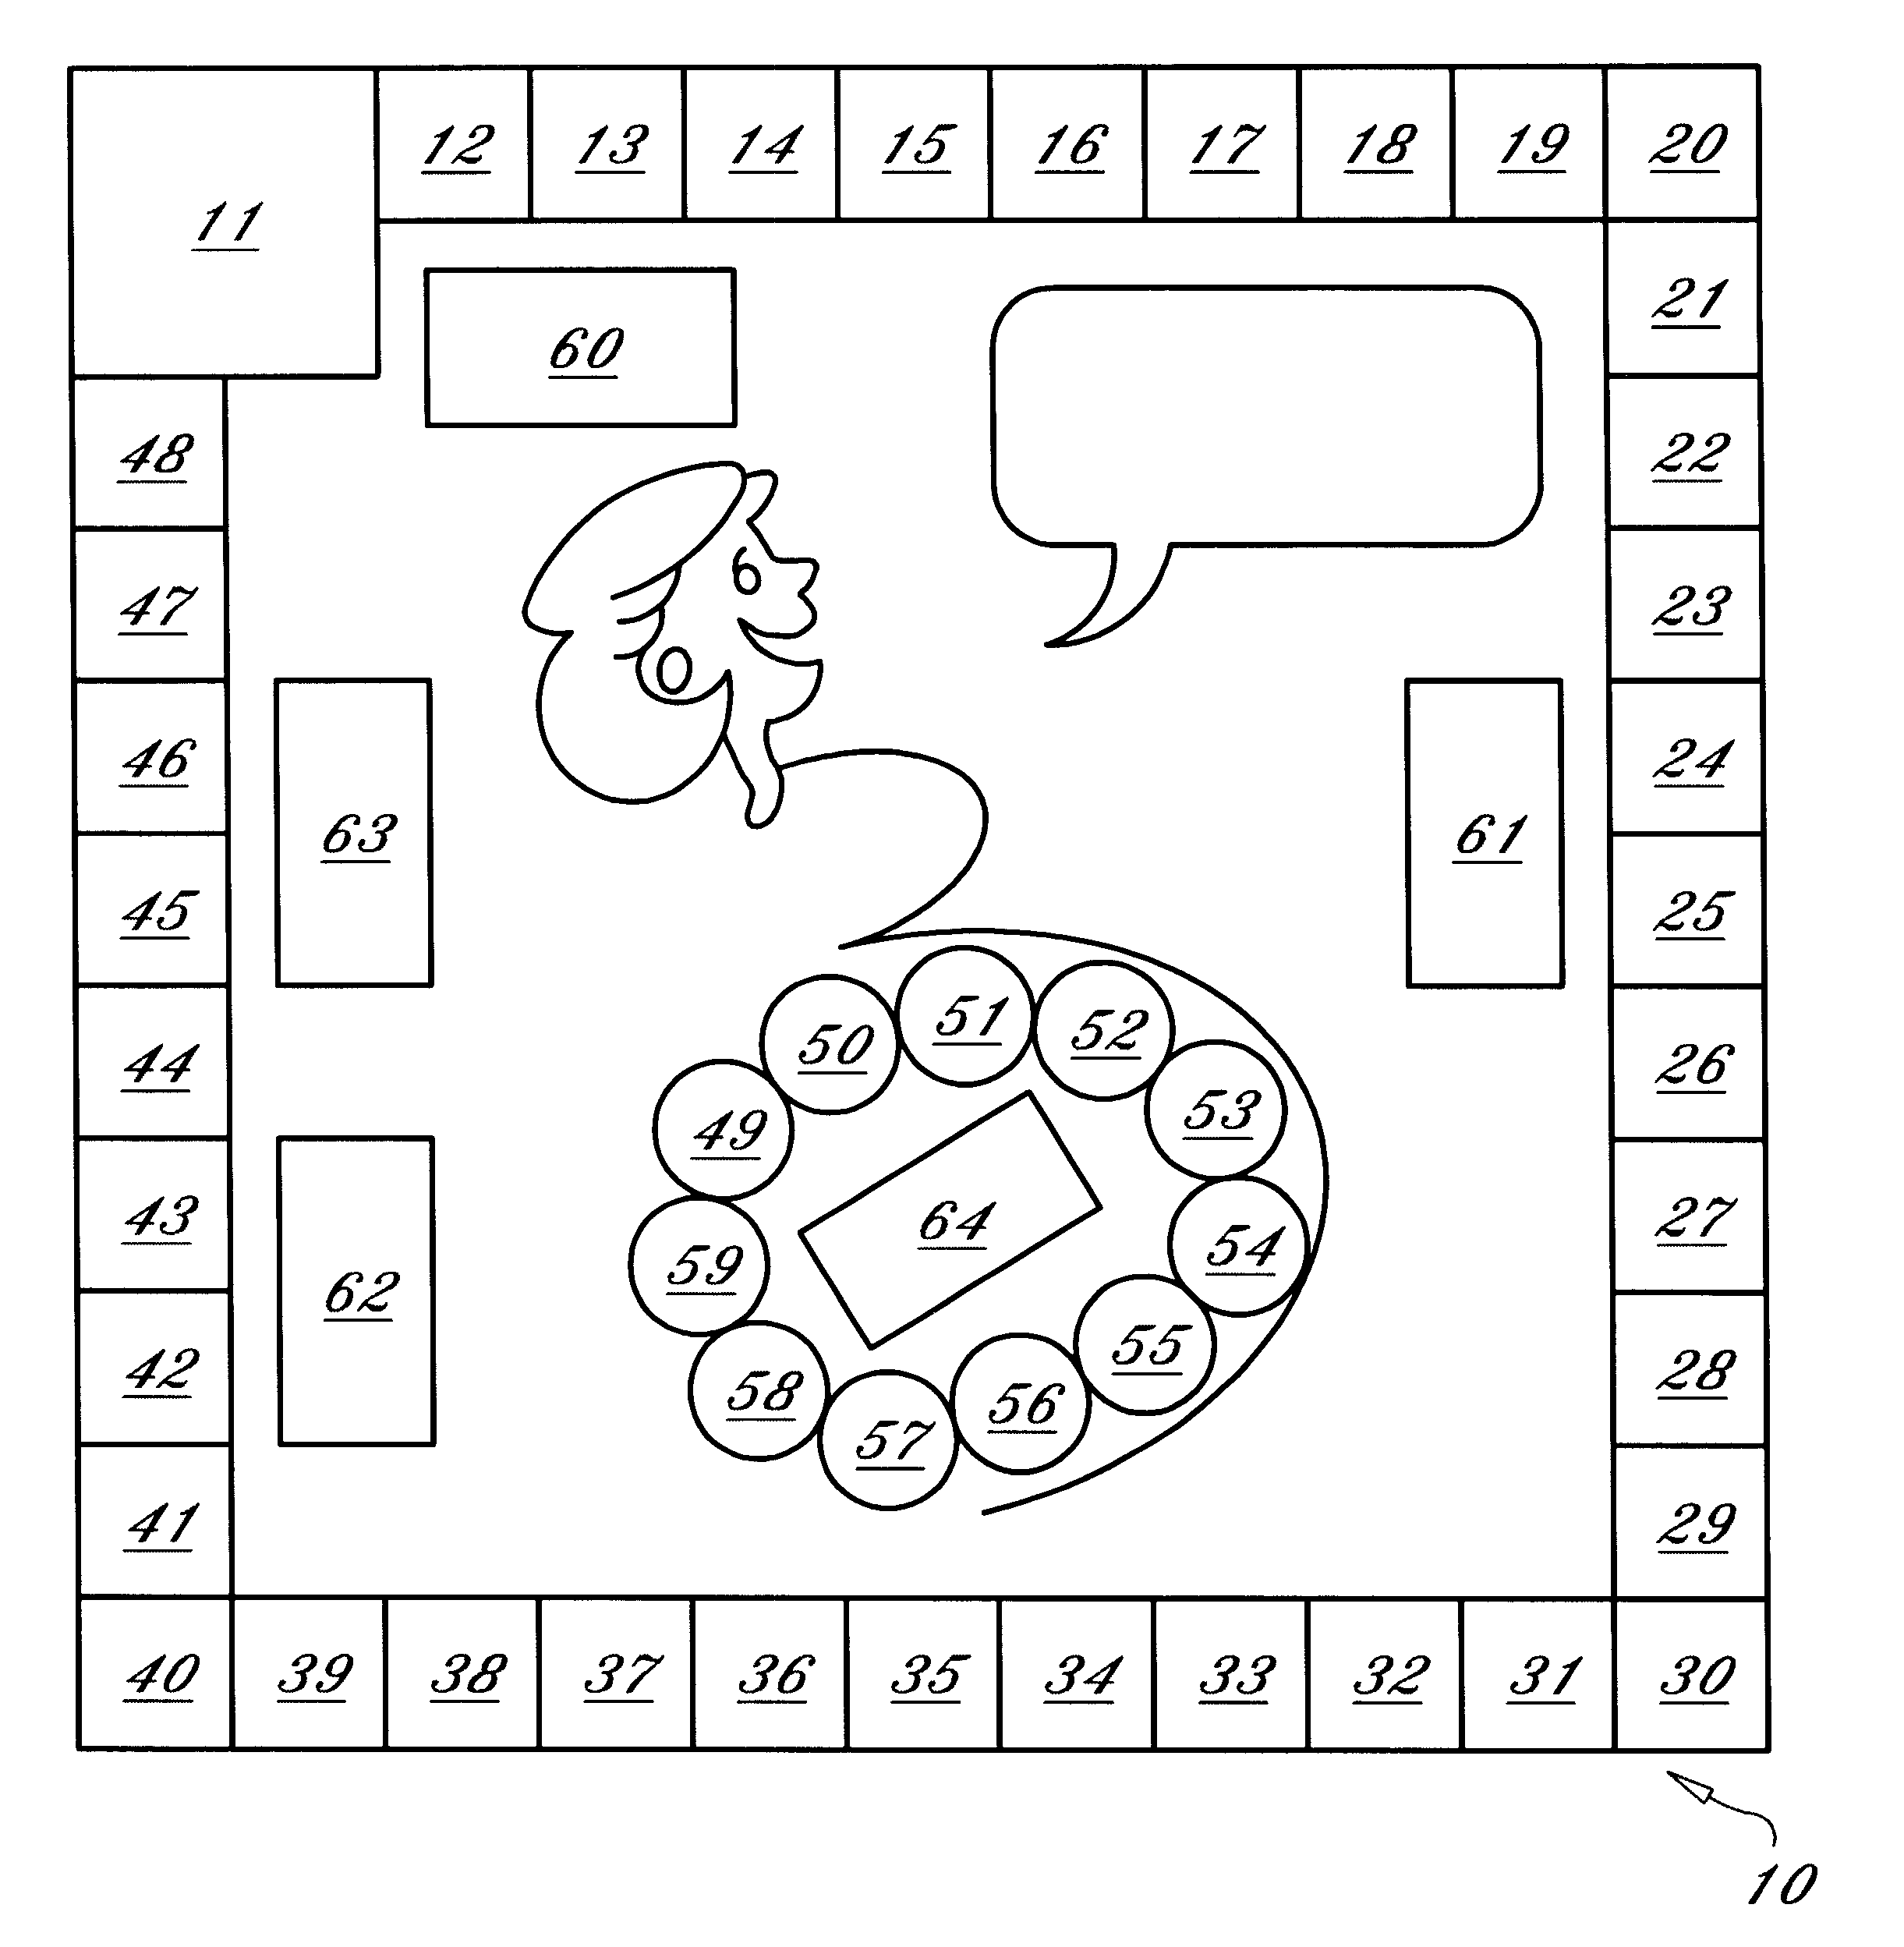 how to get a board game patent